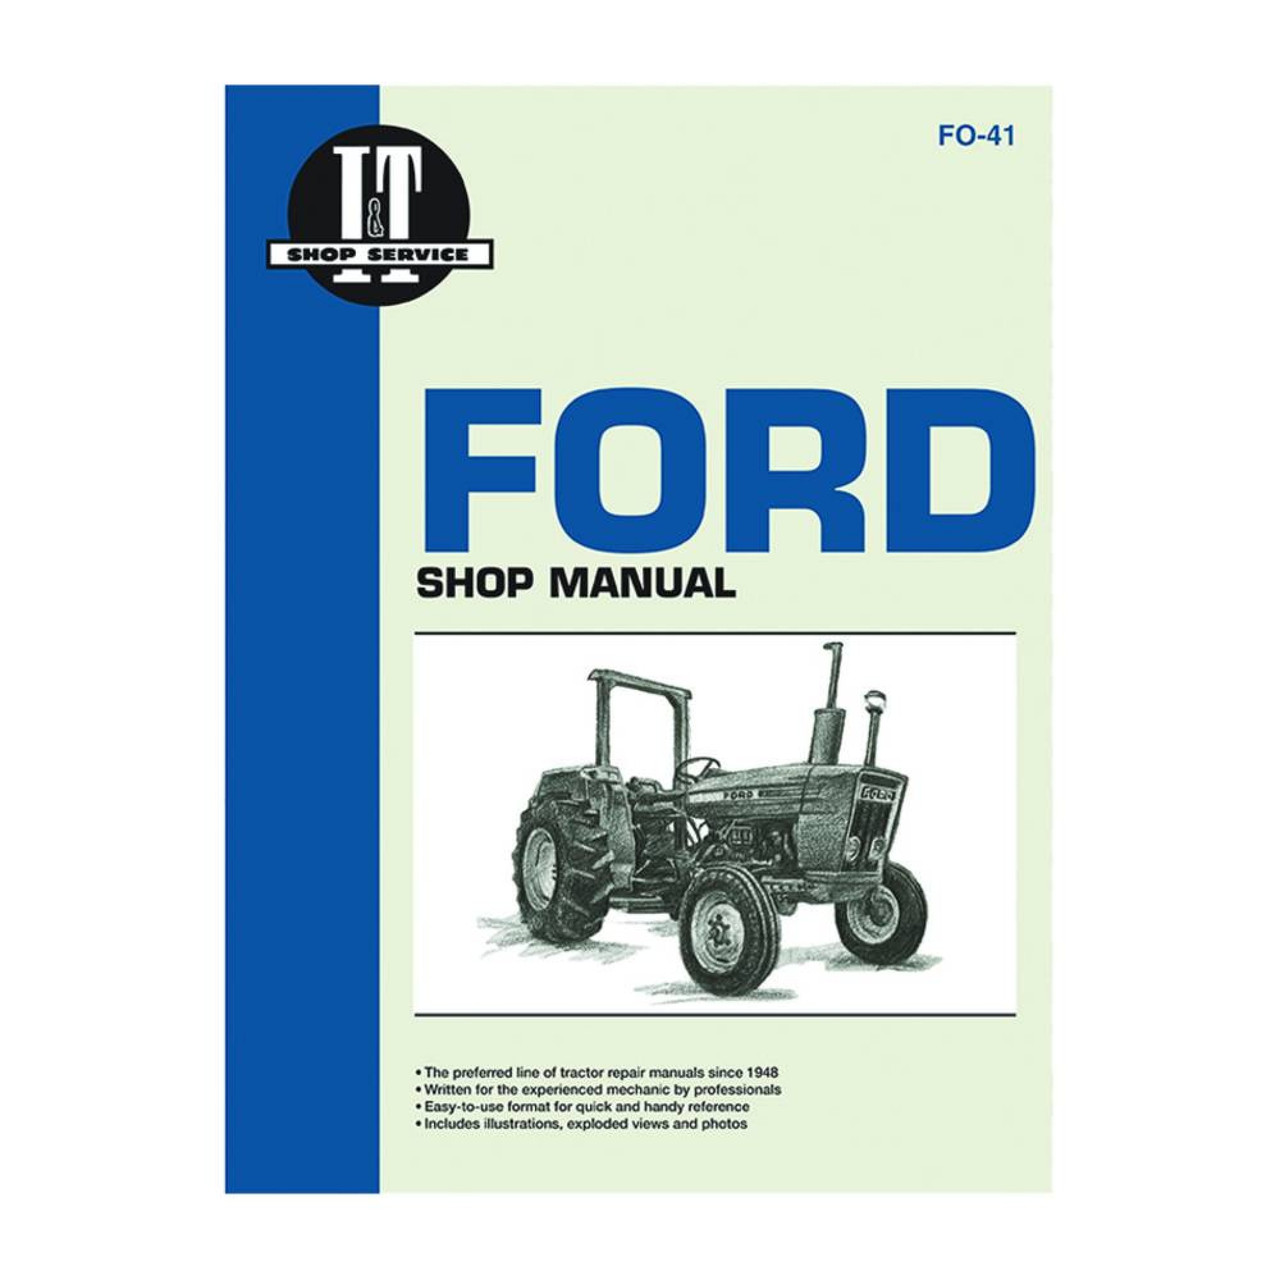 2230 Manuals Whirlpool 677818l Dryer Manual For Gas And Electric Dryers Array Service Ford New Holland Tractor Fo 41 2310260026103600 Rh Completetractor Com